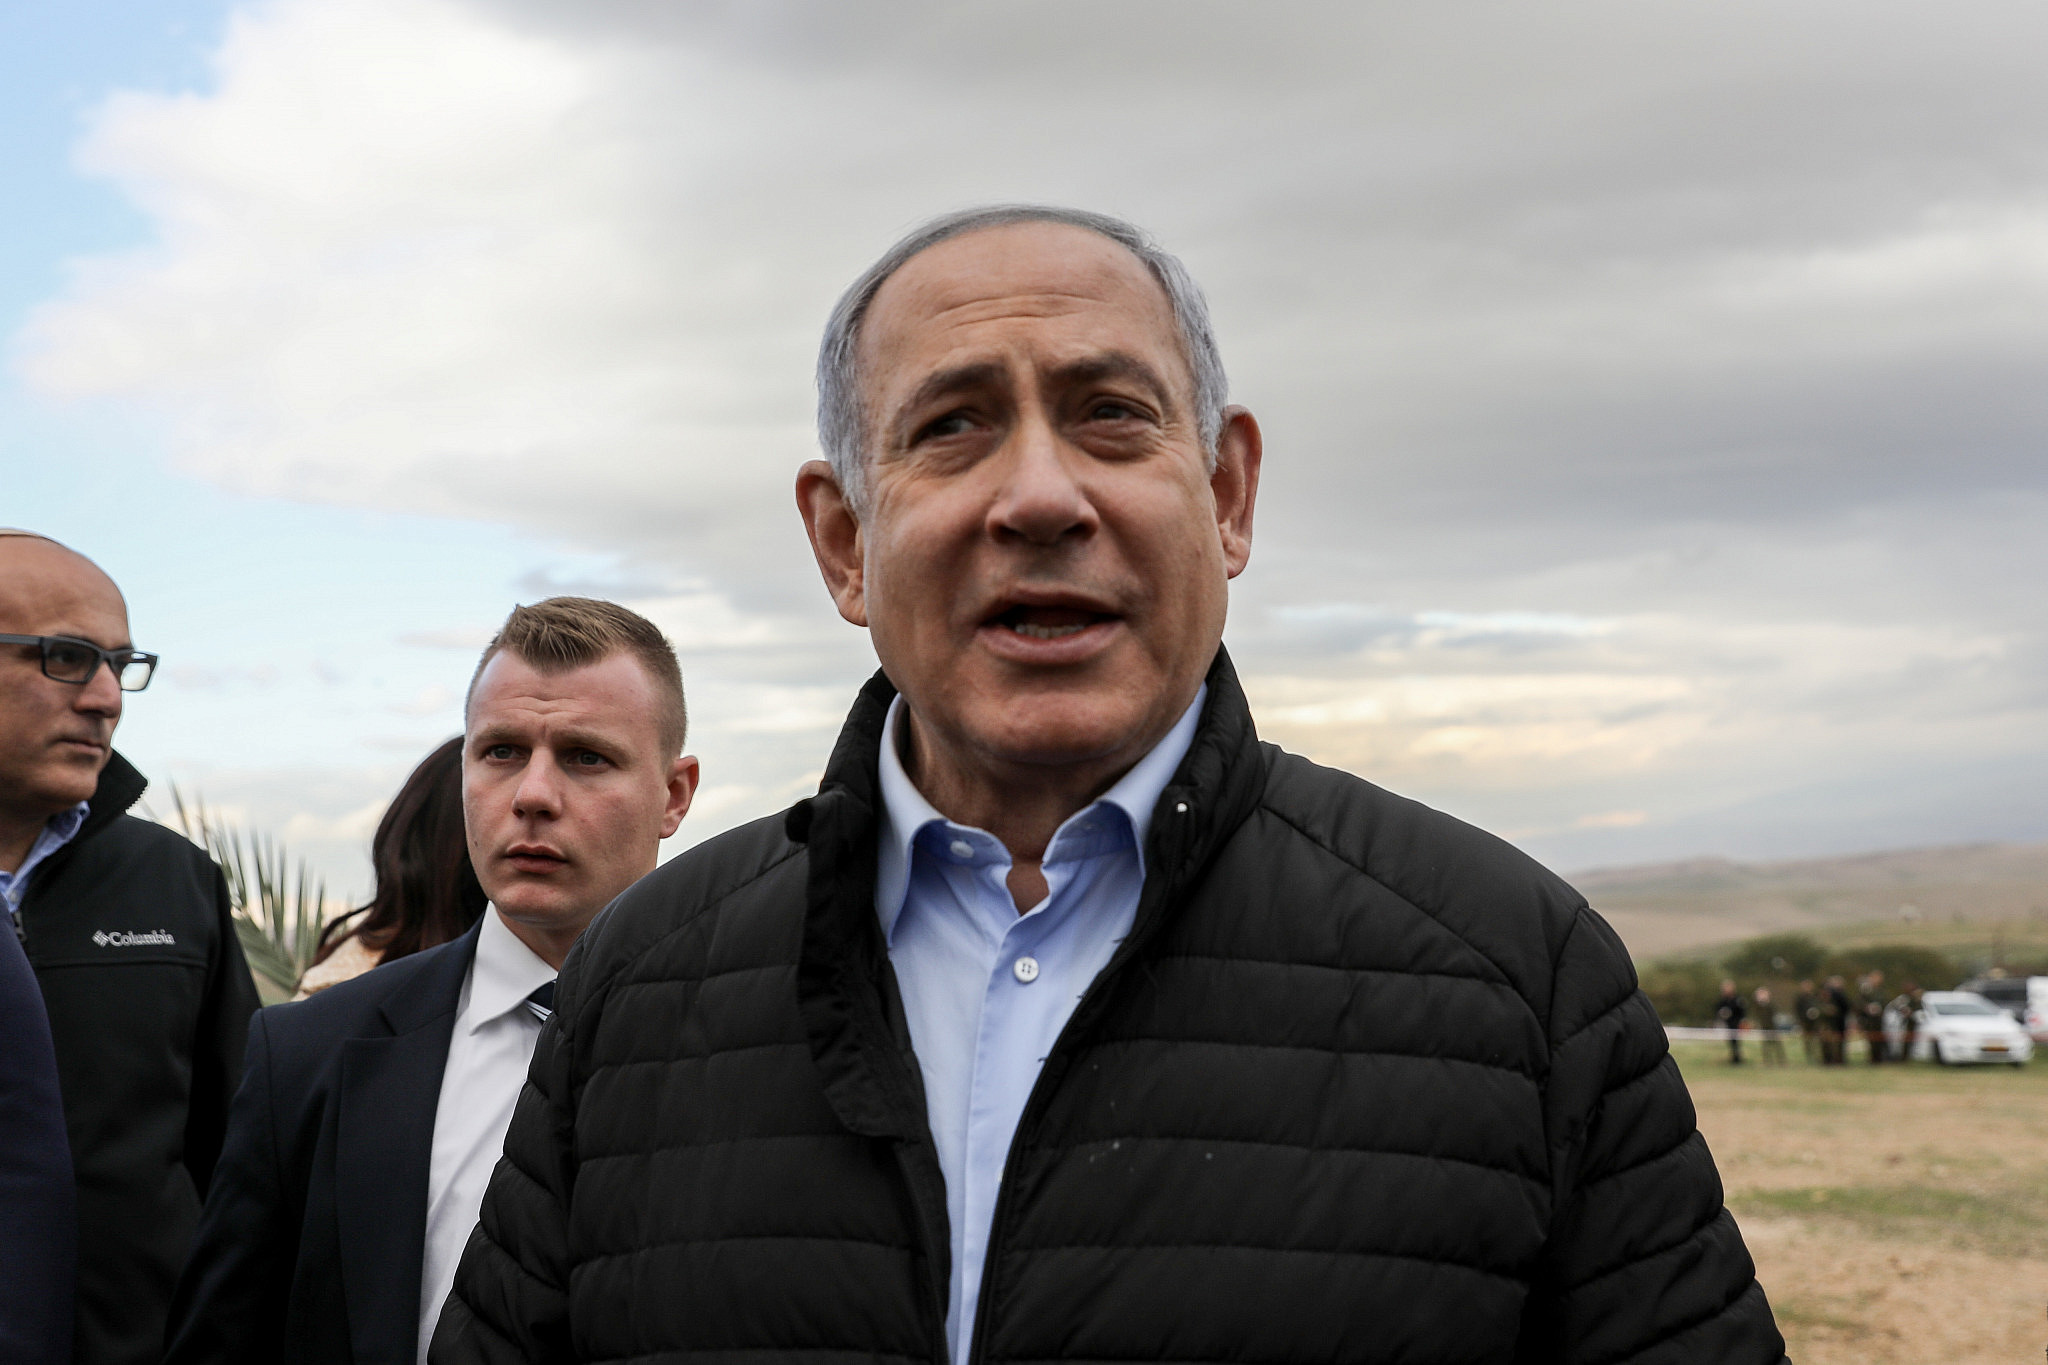 Israeli Prime Minister Benjamin Netanyahu seen during a tree planting event for the Jewish holiday of Tu Bishvat, in the West Bank settlement of Mevo'ot Yericho, in the Jordan Valley, February 10, 2020. (Flash90)